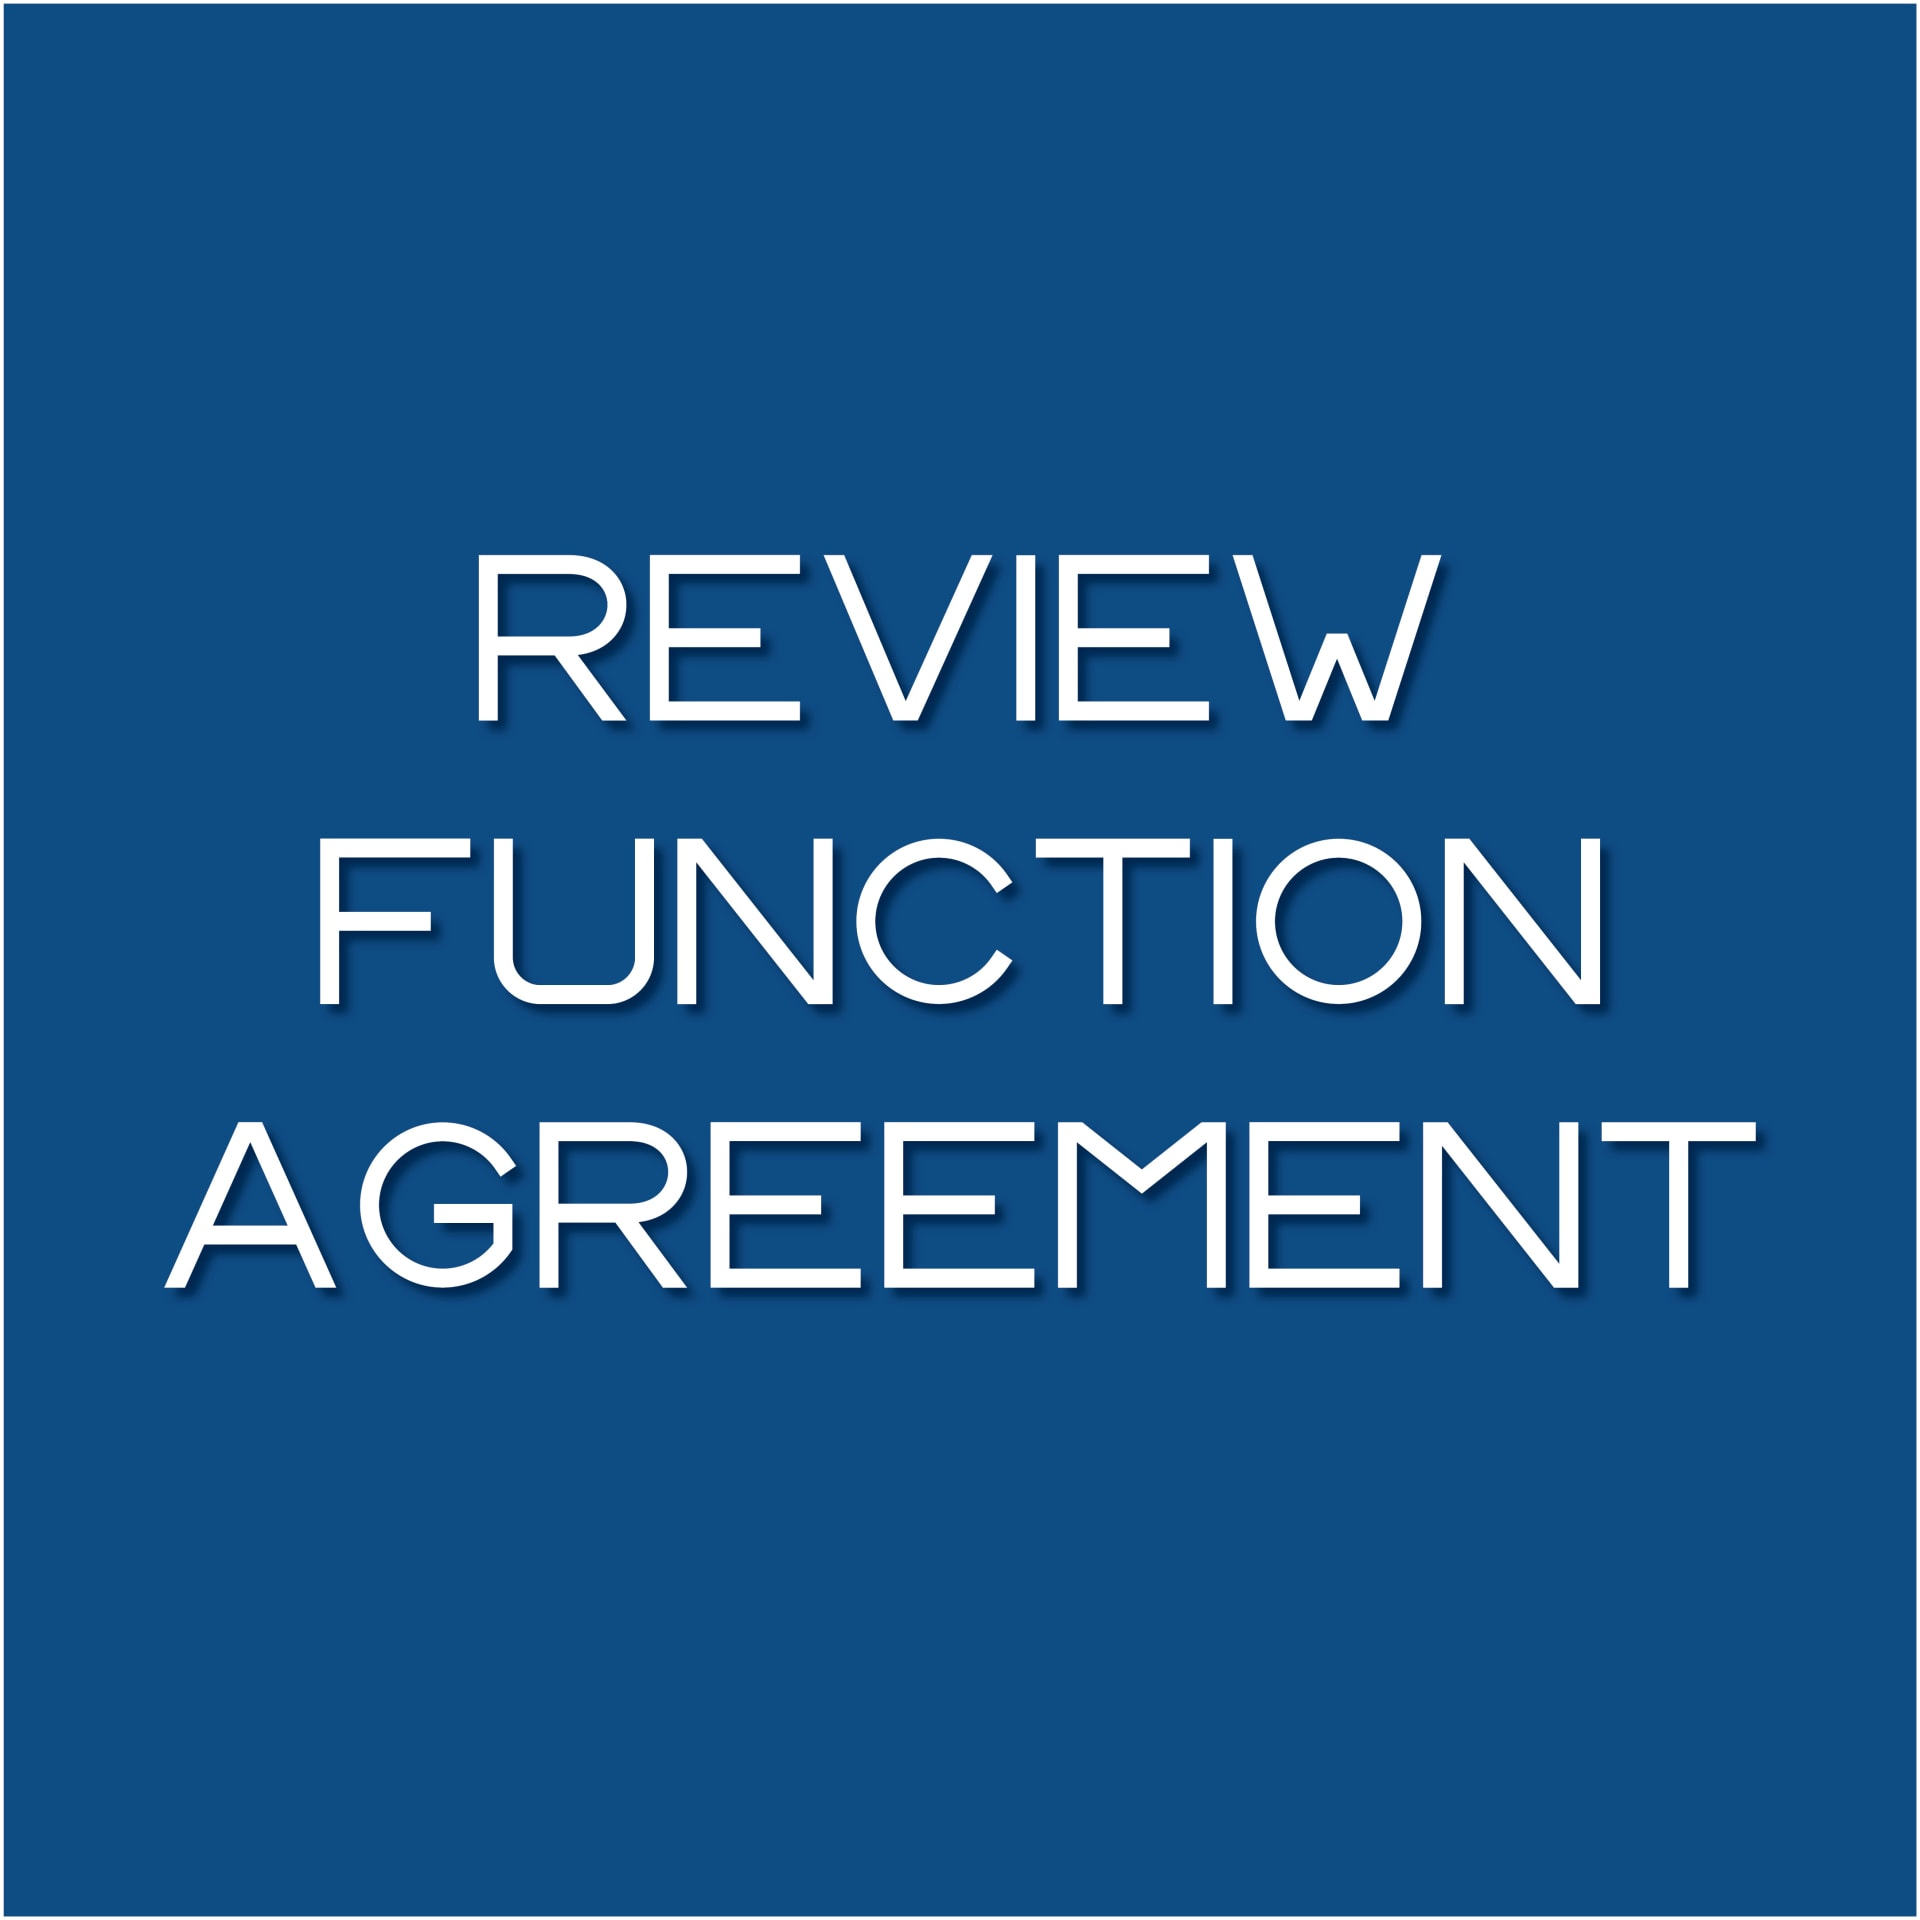 Review Function Agreement Button